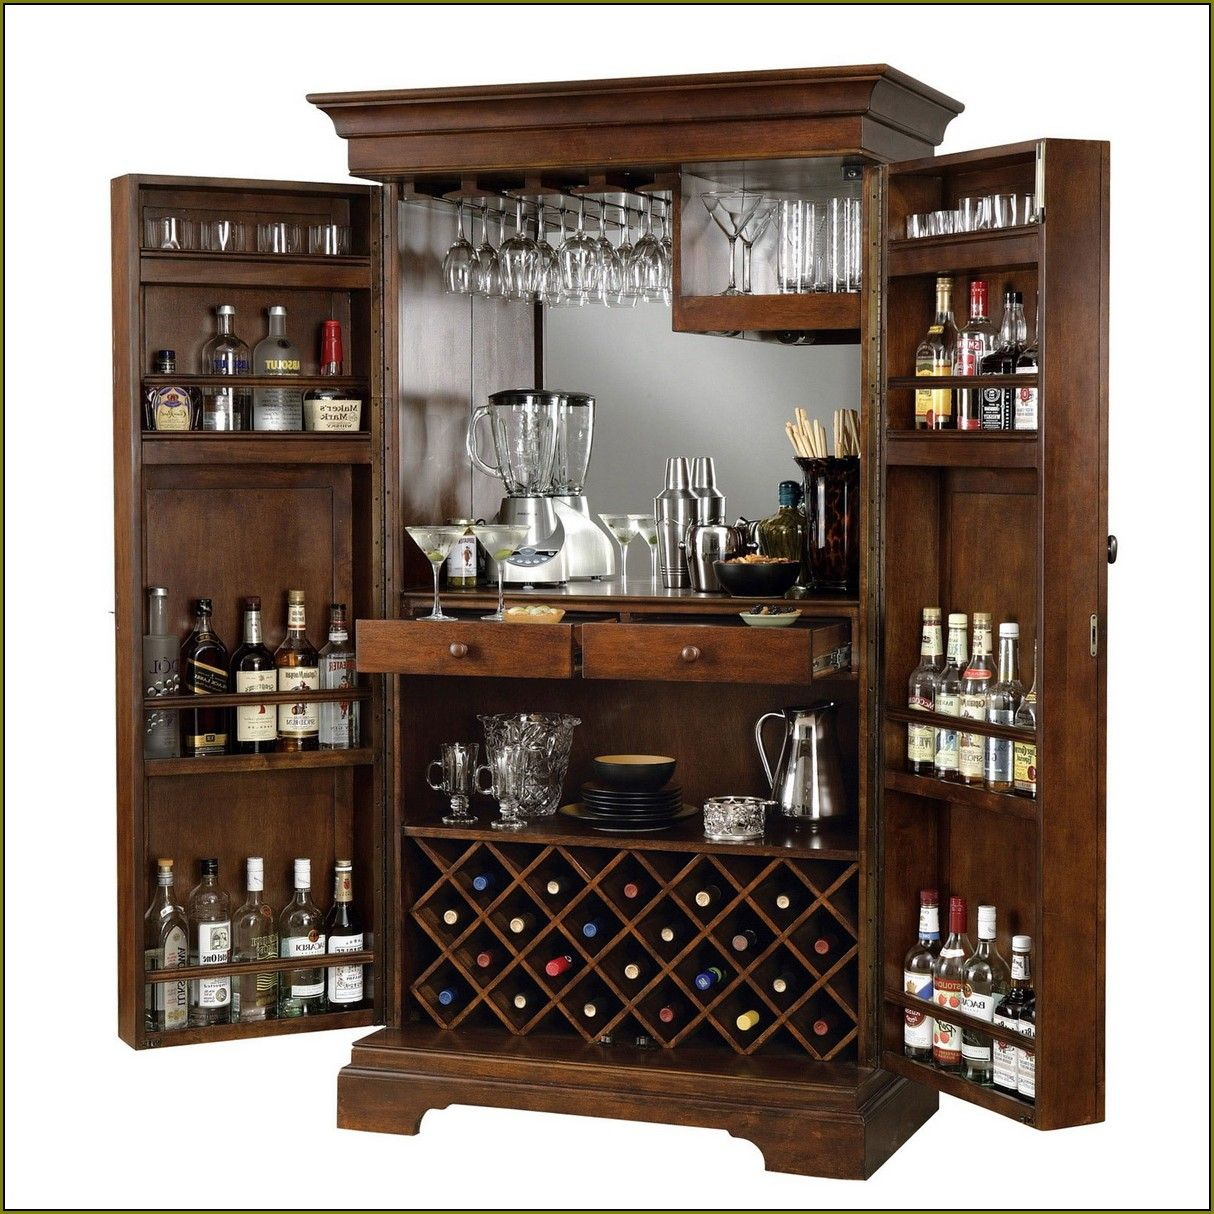 Ordinaire Awesome Brown Liquor Cabinet Ikea Made Of Wood With Swivel Door For Home  Bar Room Furniture Ideas Wooden Wine Racks Wall Mounted Wine Racks Target  Wall ...